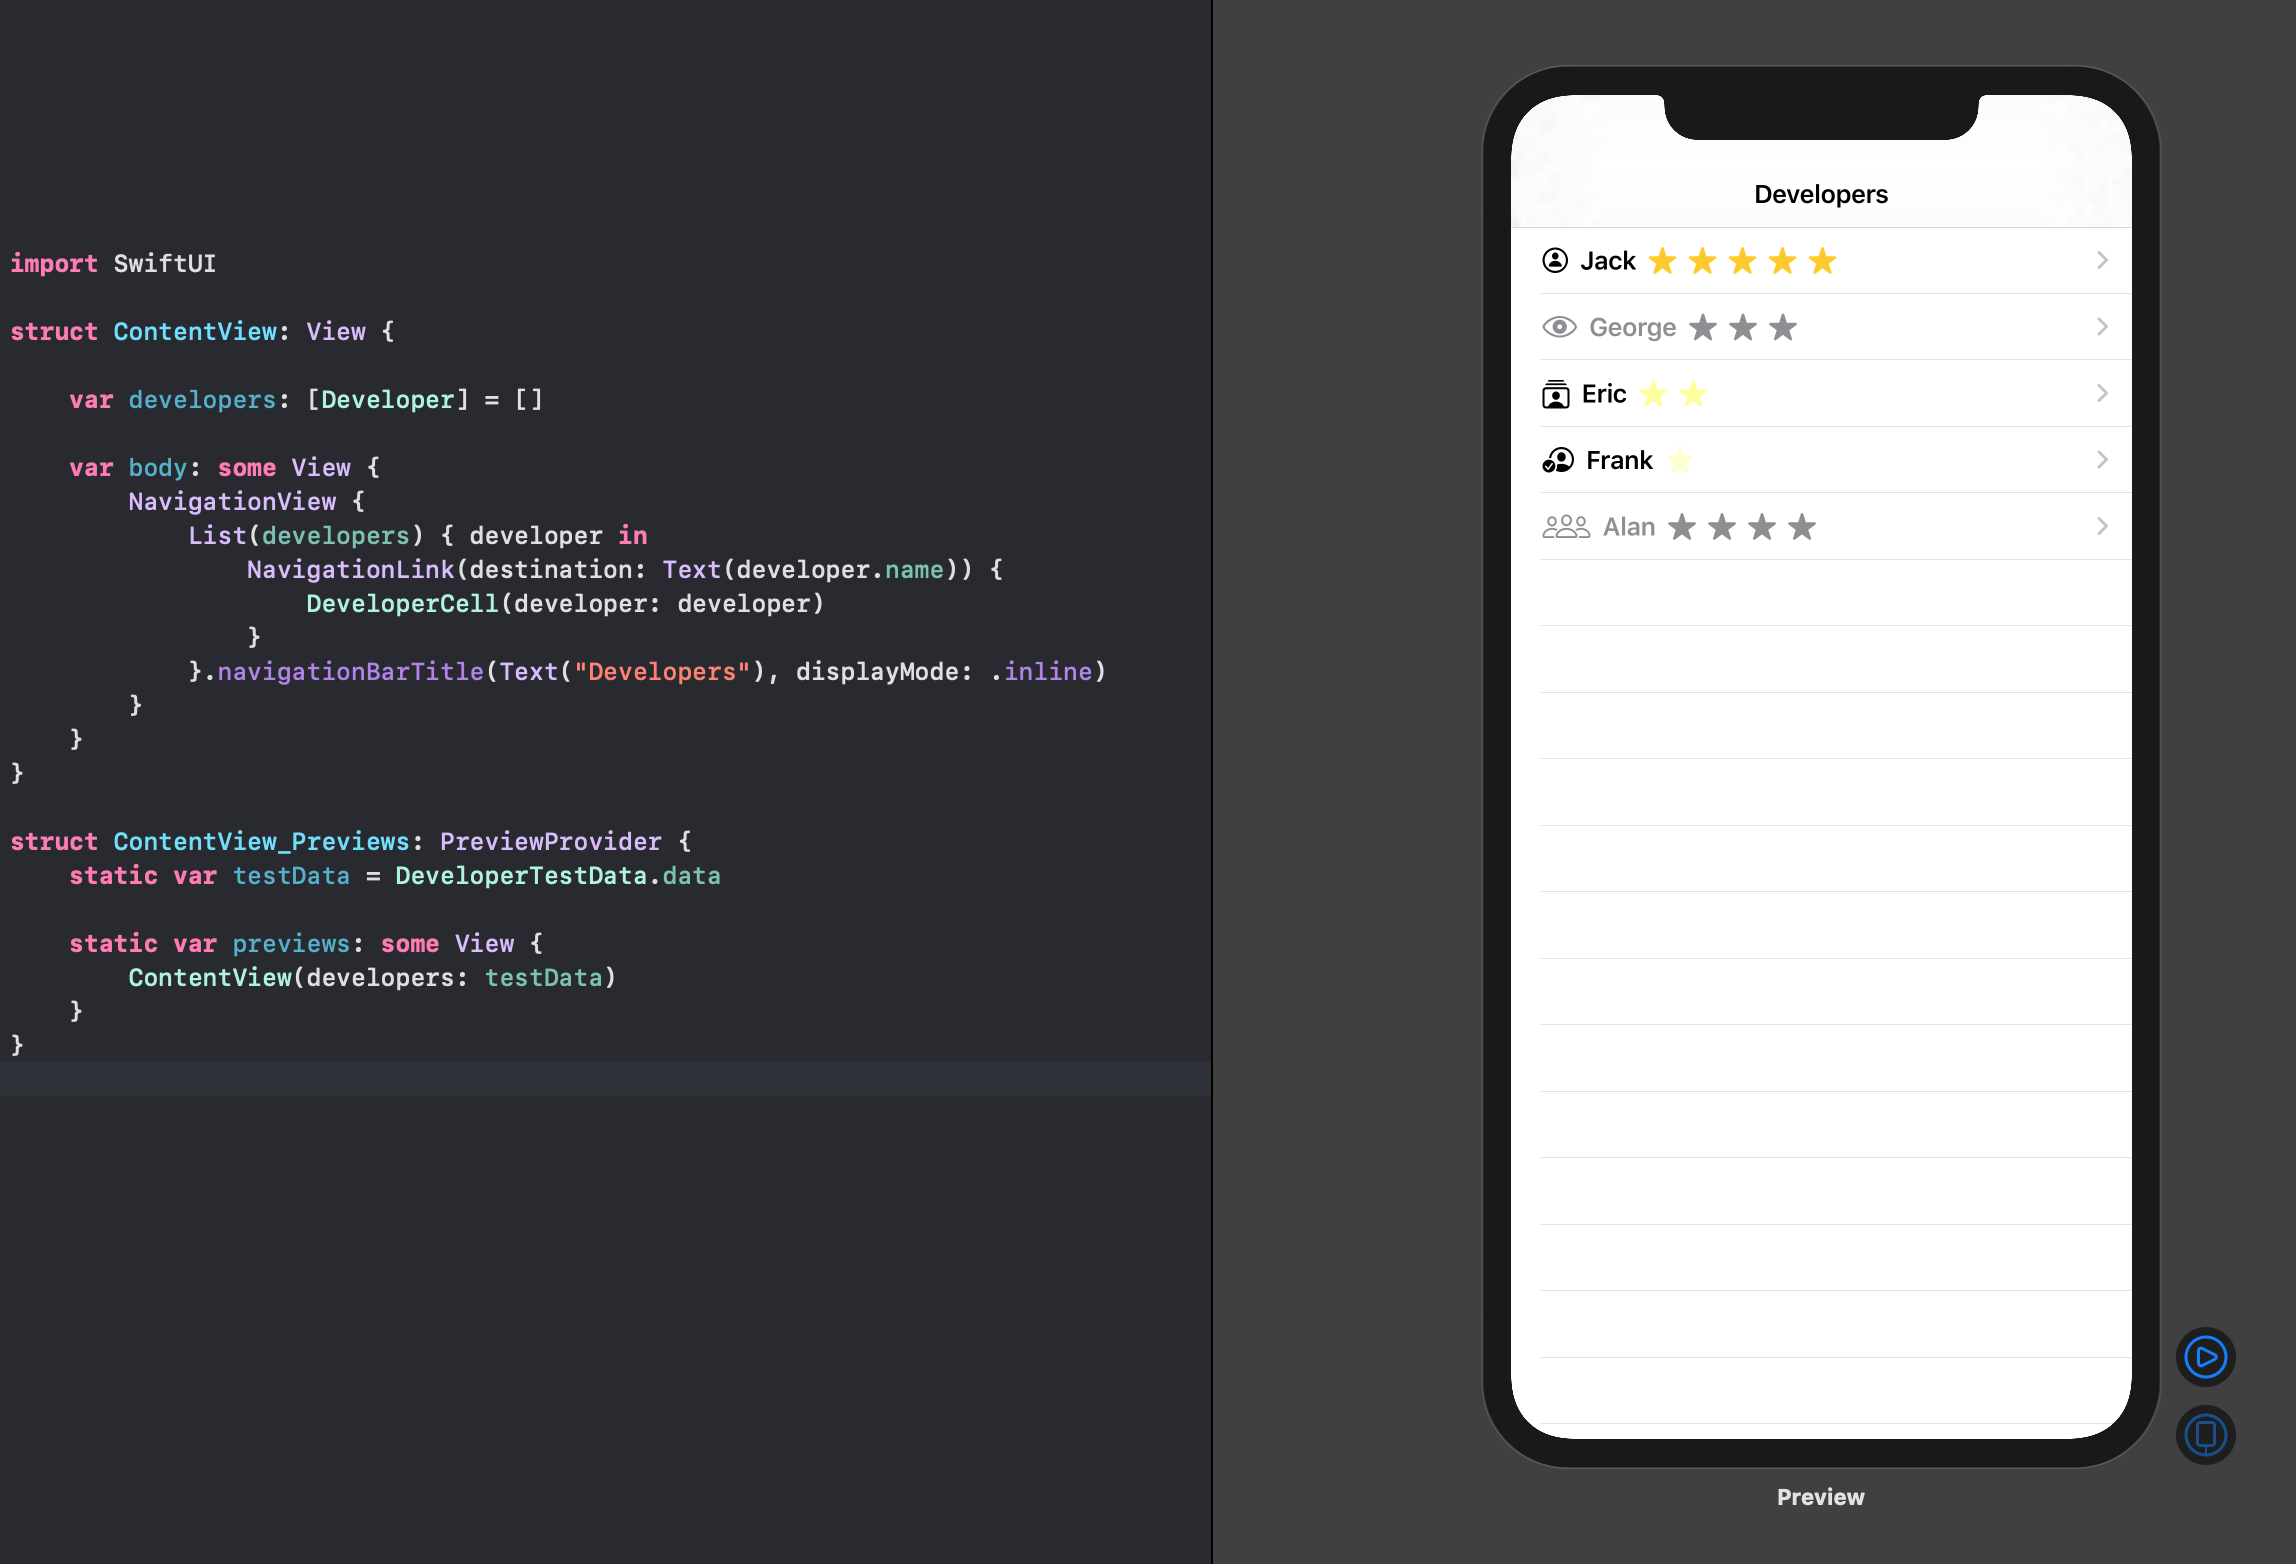 SwiftUI developer content view